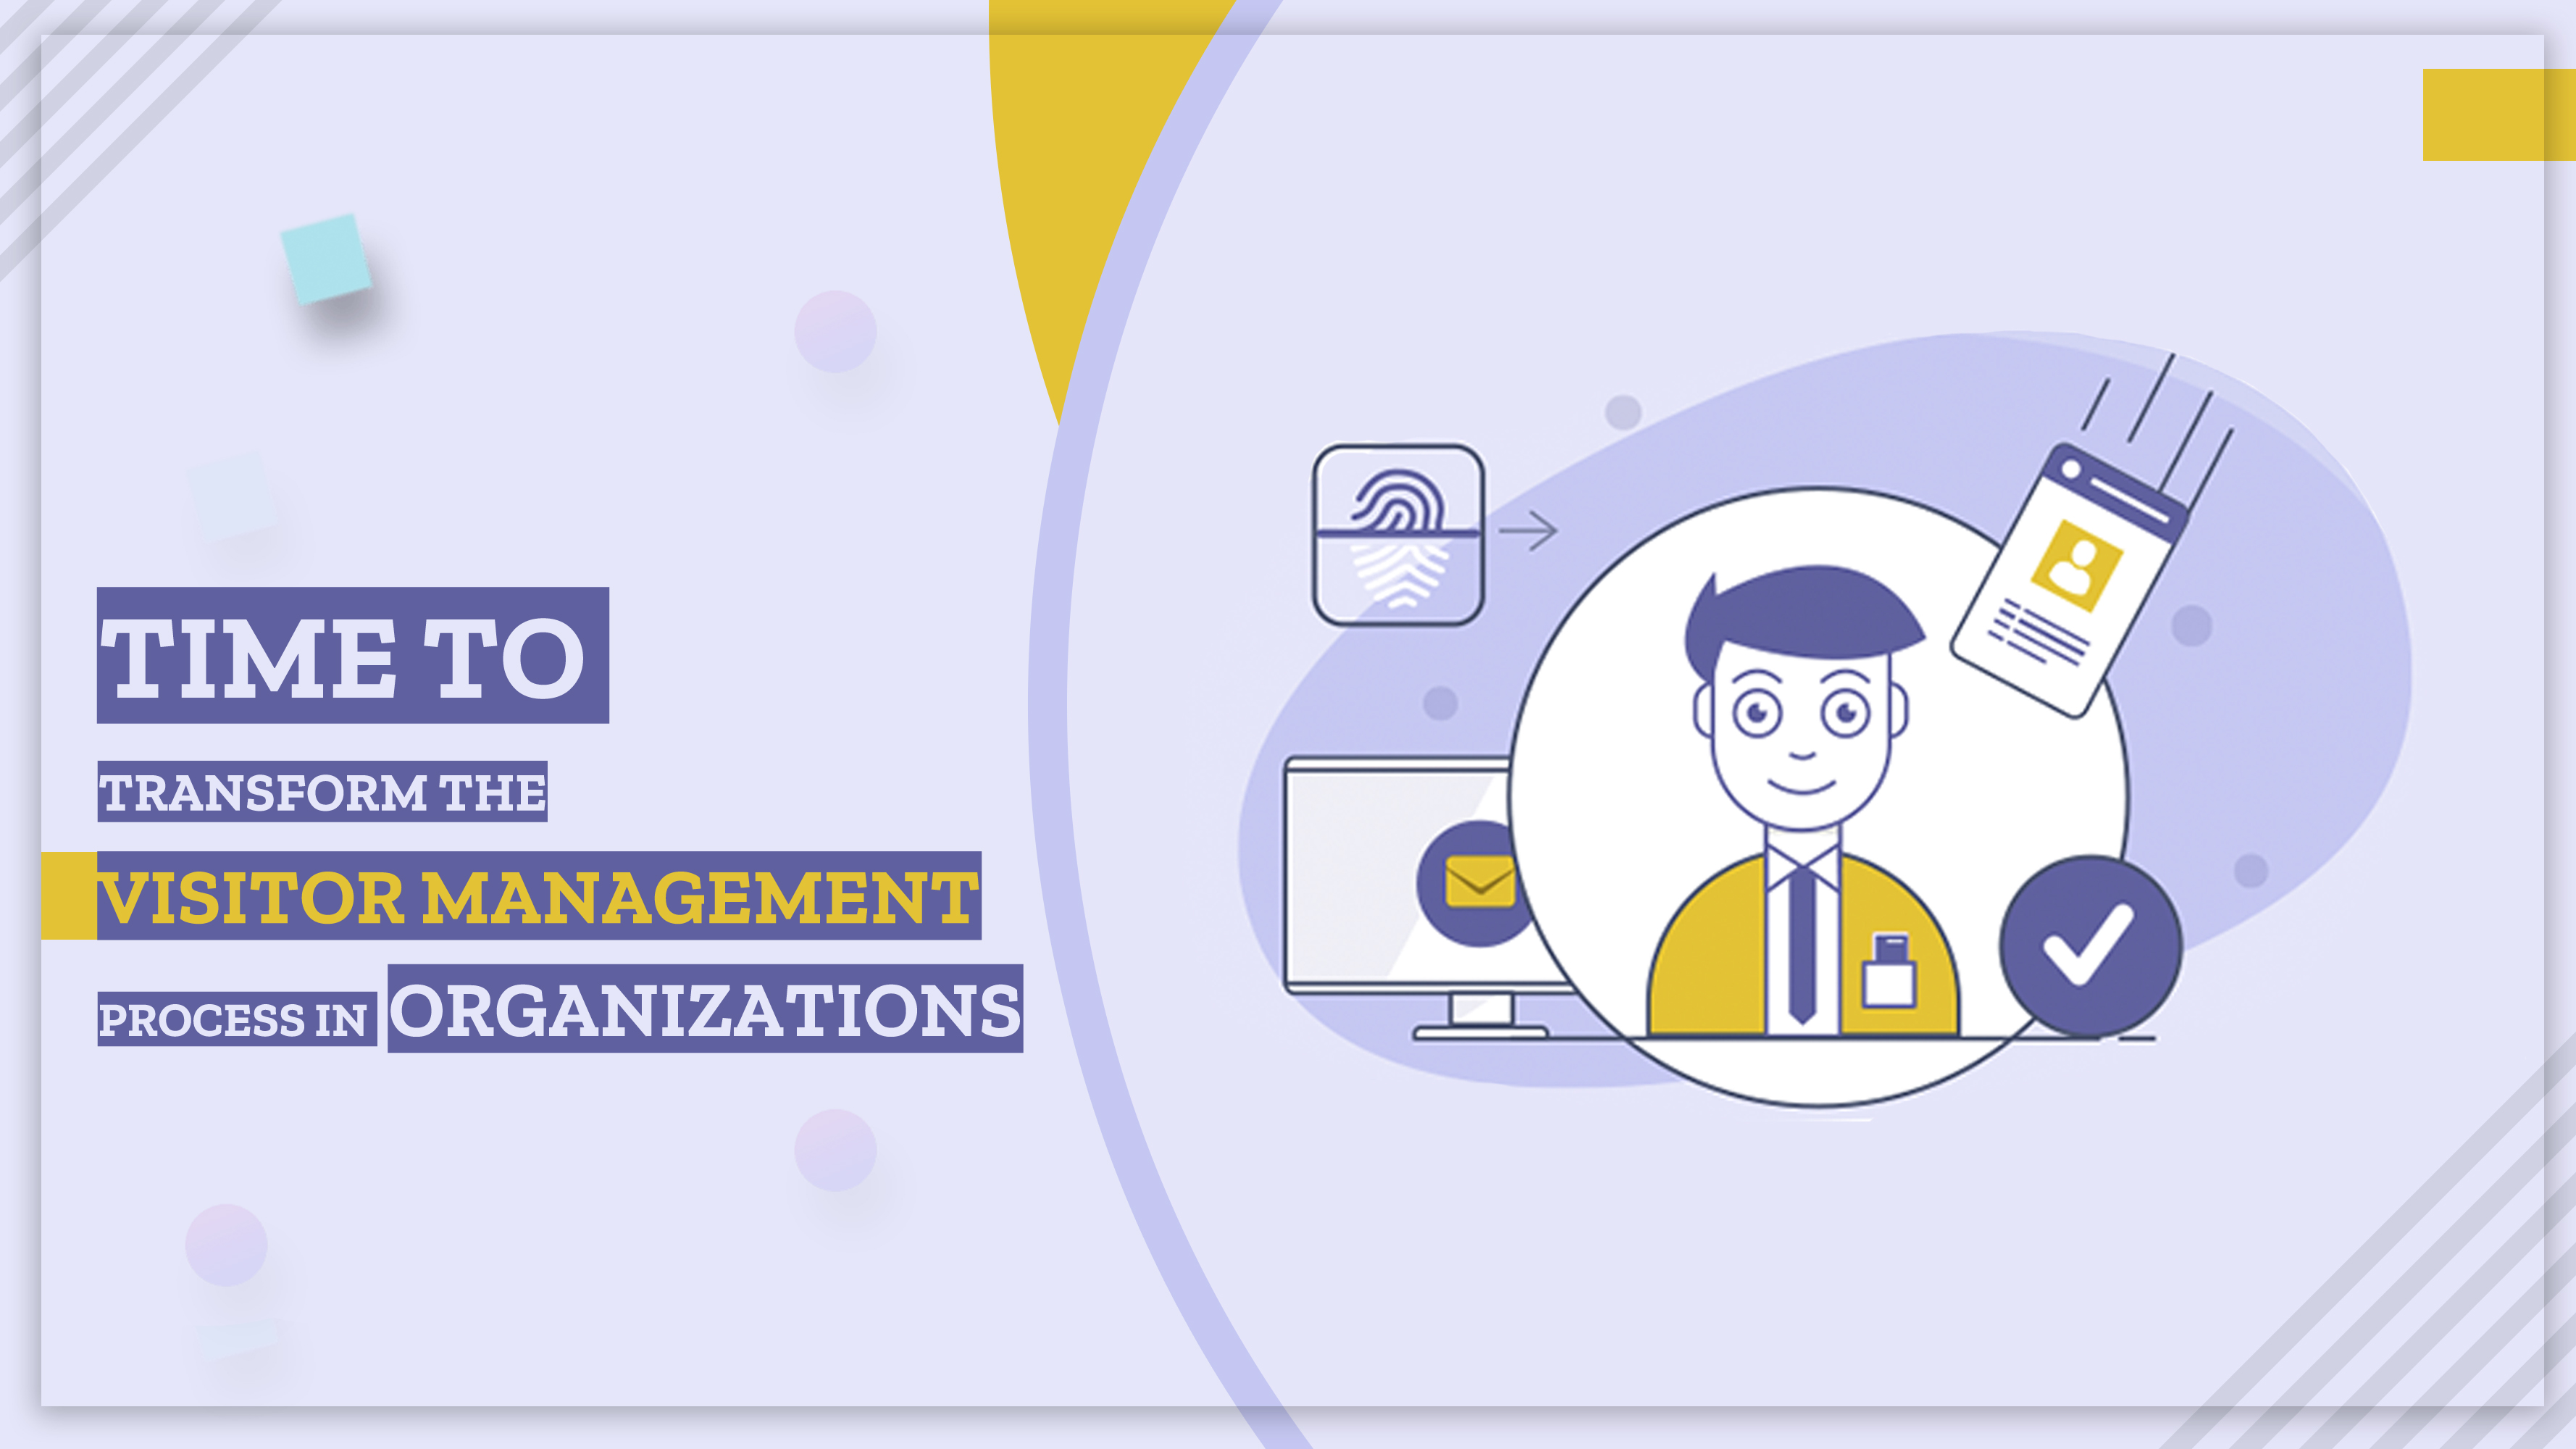 Time to Transform the Visitor Management Process in Organizations